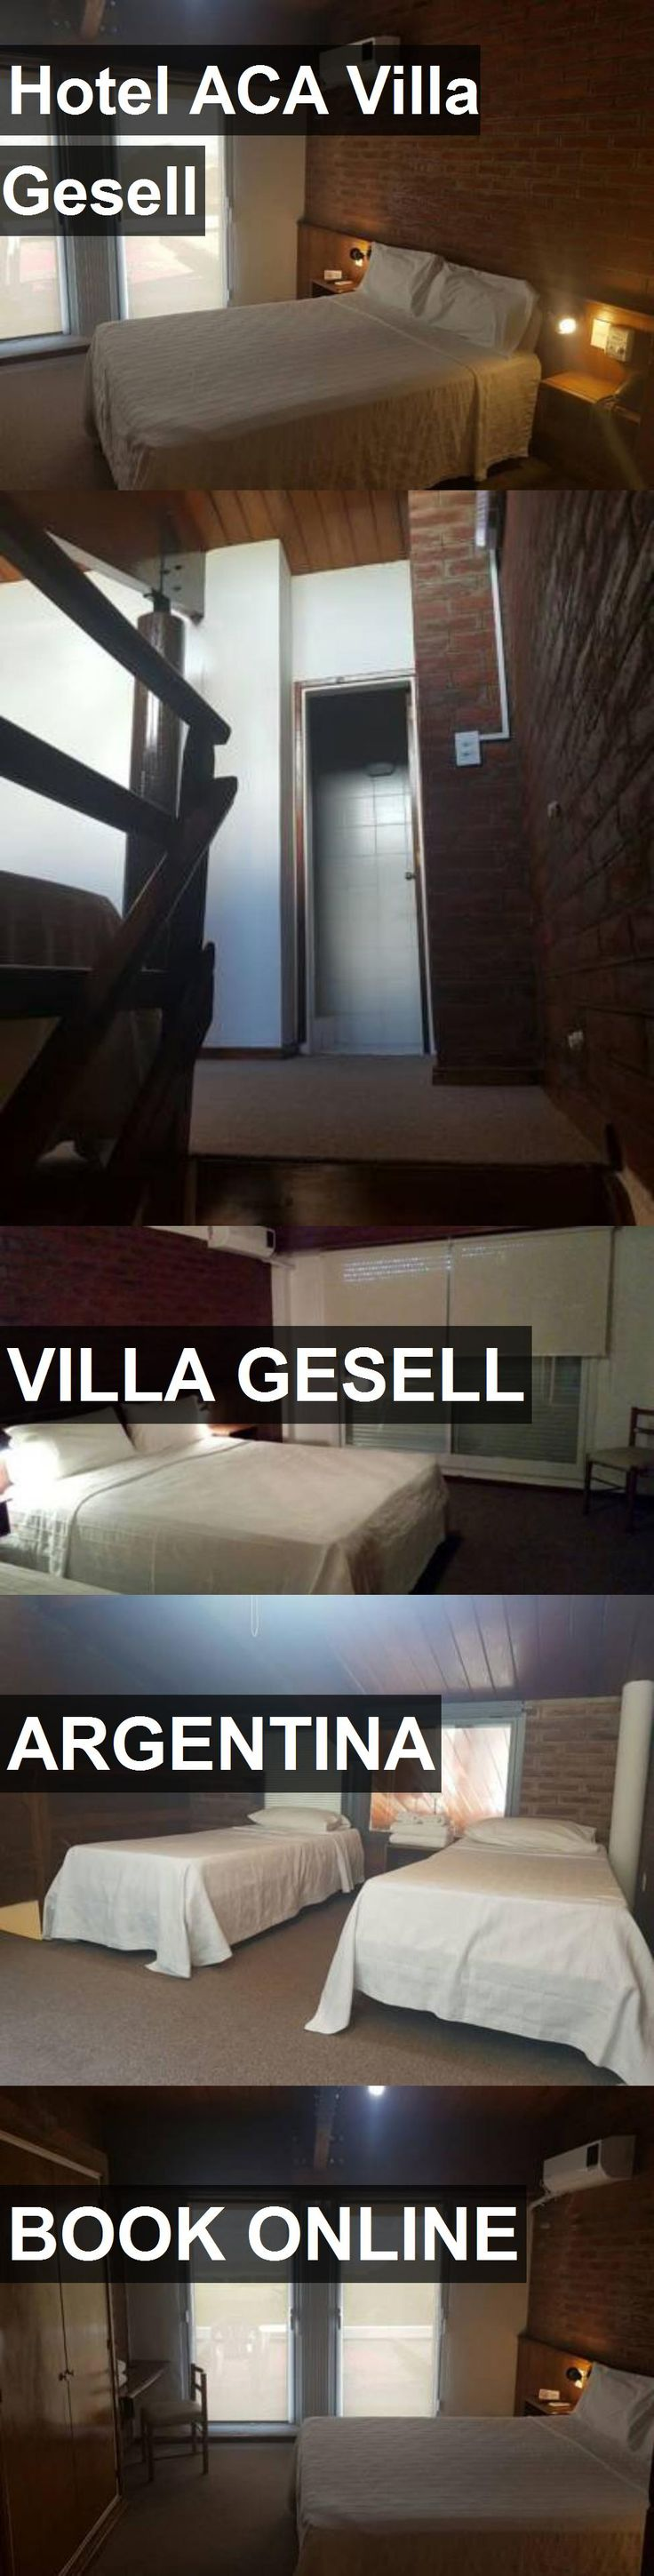 Hotel ACA Villa Gesell in Villa Gesell, Argentina. For more information, photos, reviews and best prices please follow the link. #Argentina #VillaGesell #travel #vacation #hotel